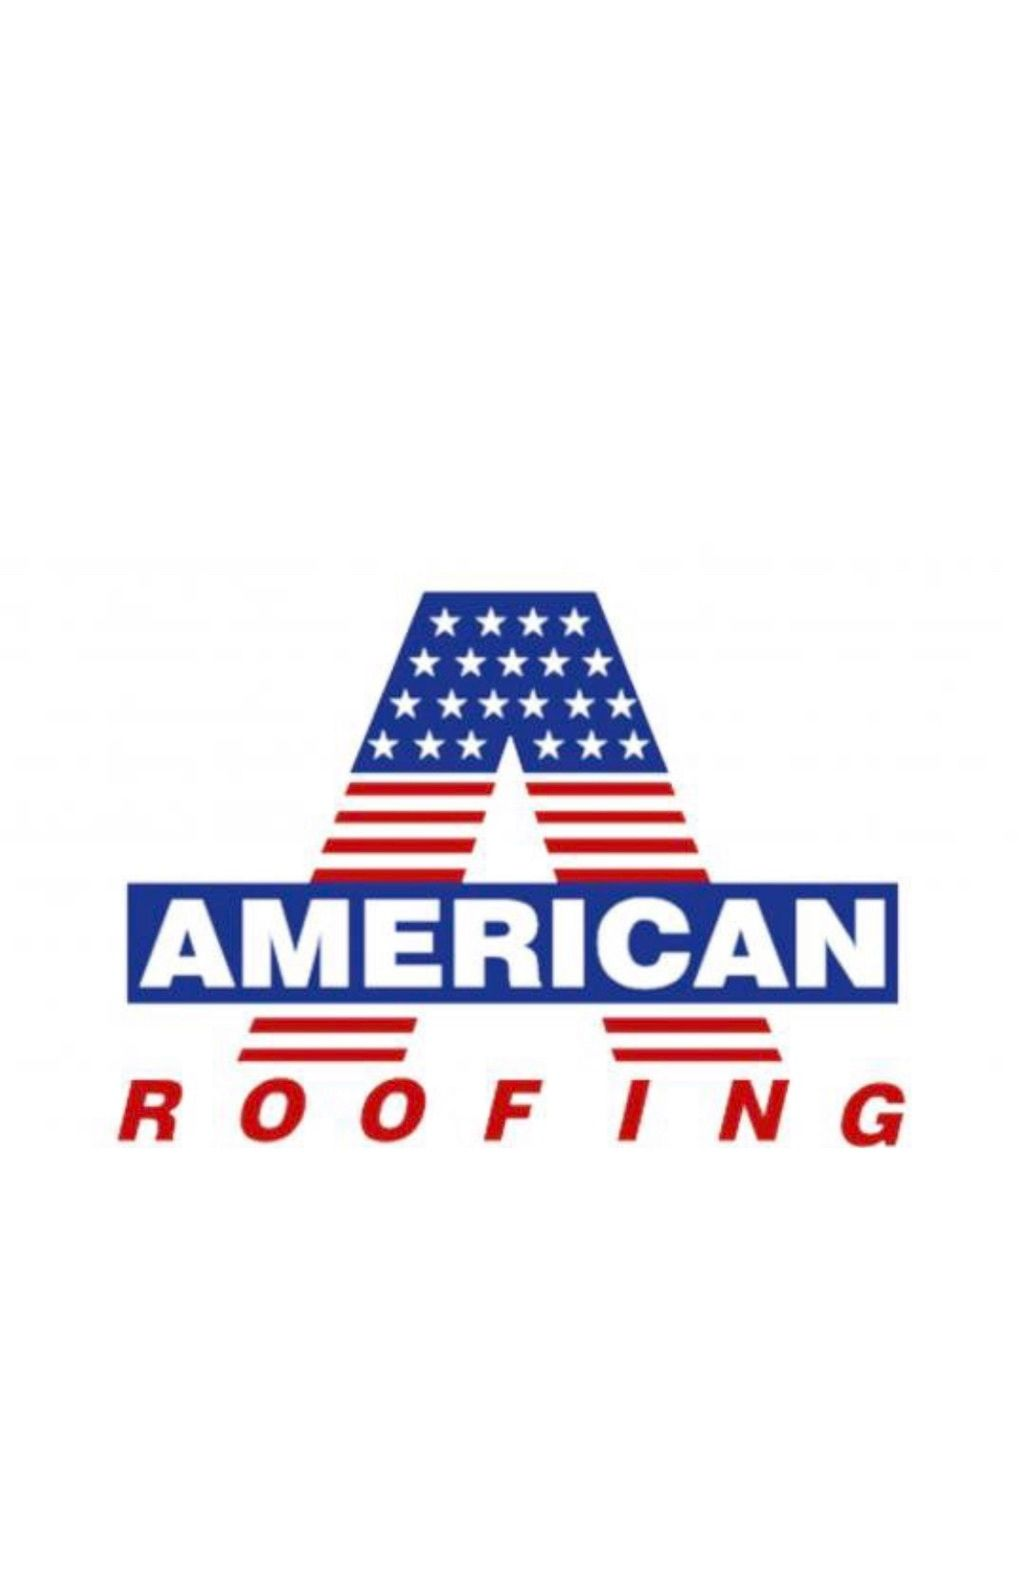 American Roofing and Contracting